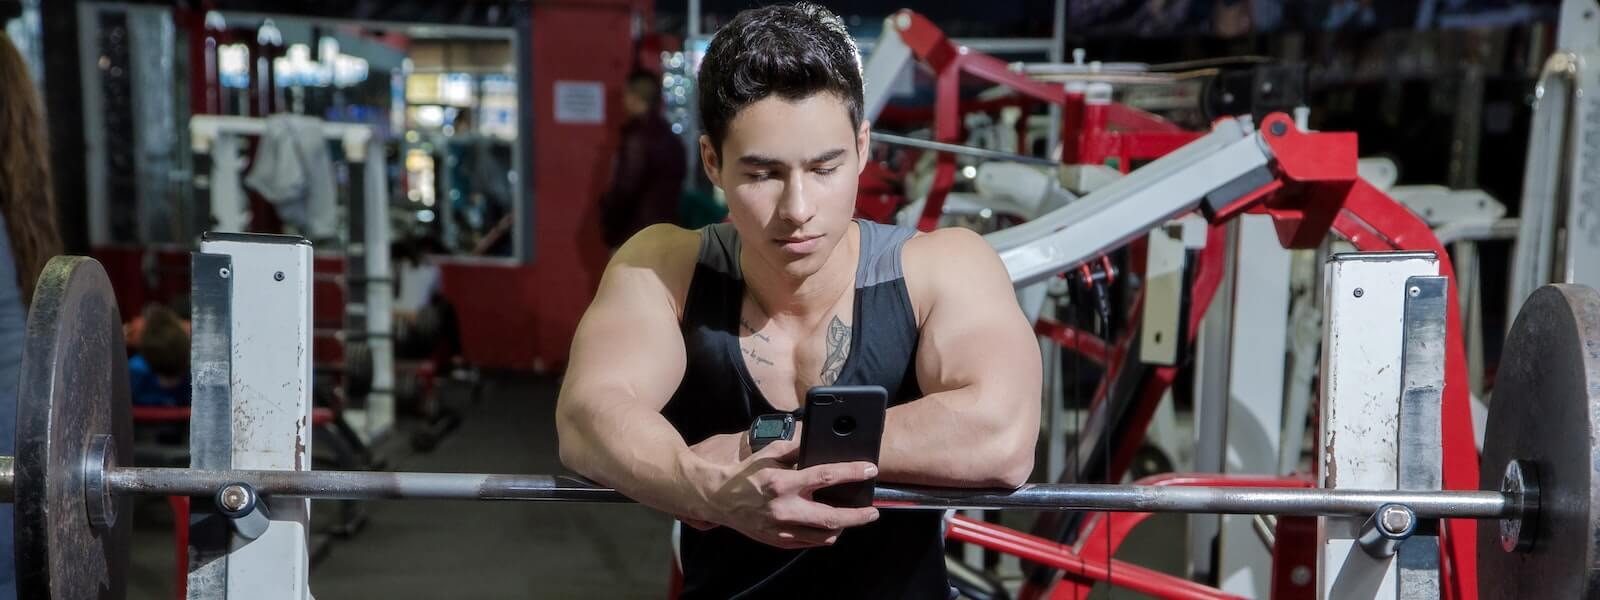 10 Ways You're Wasting Time at the Gym Blog Post at Supplement Superstore Canada